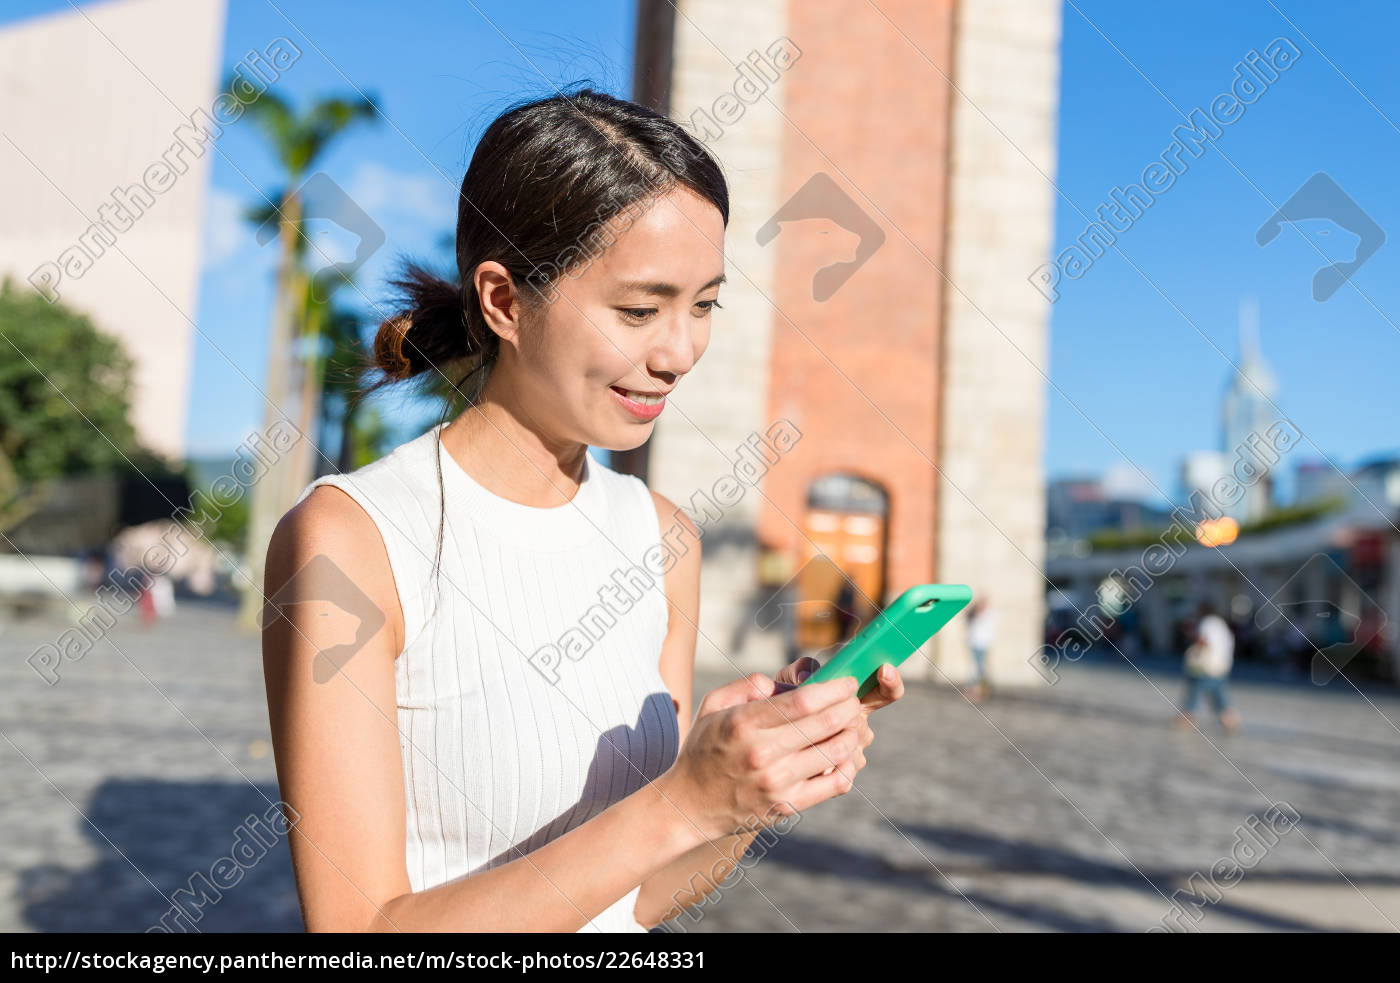 woman, use, of, cellphone, in, hong - 22648331